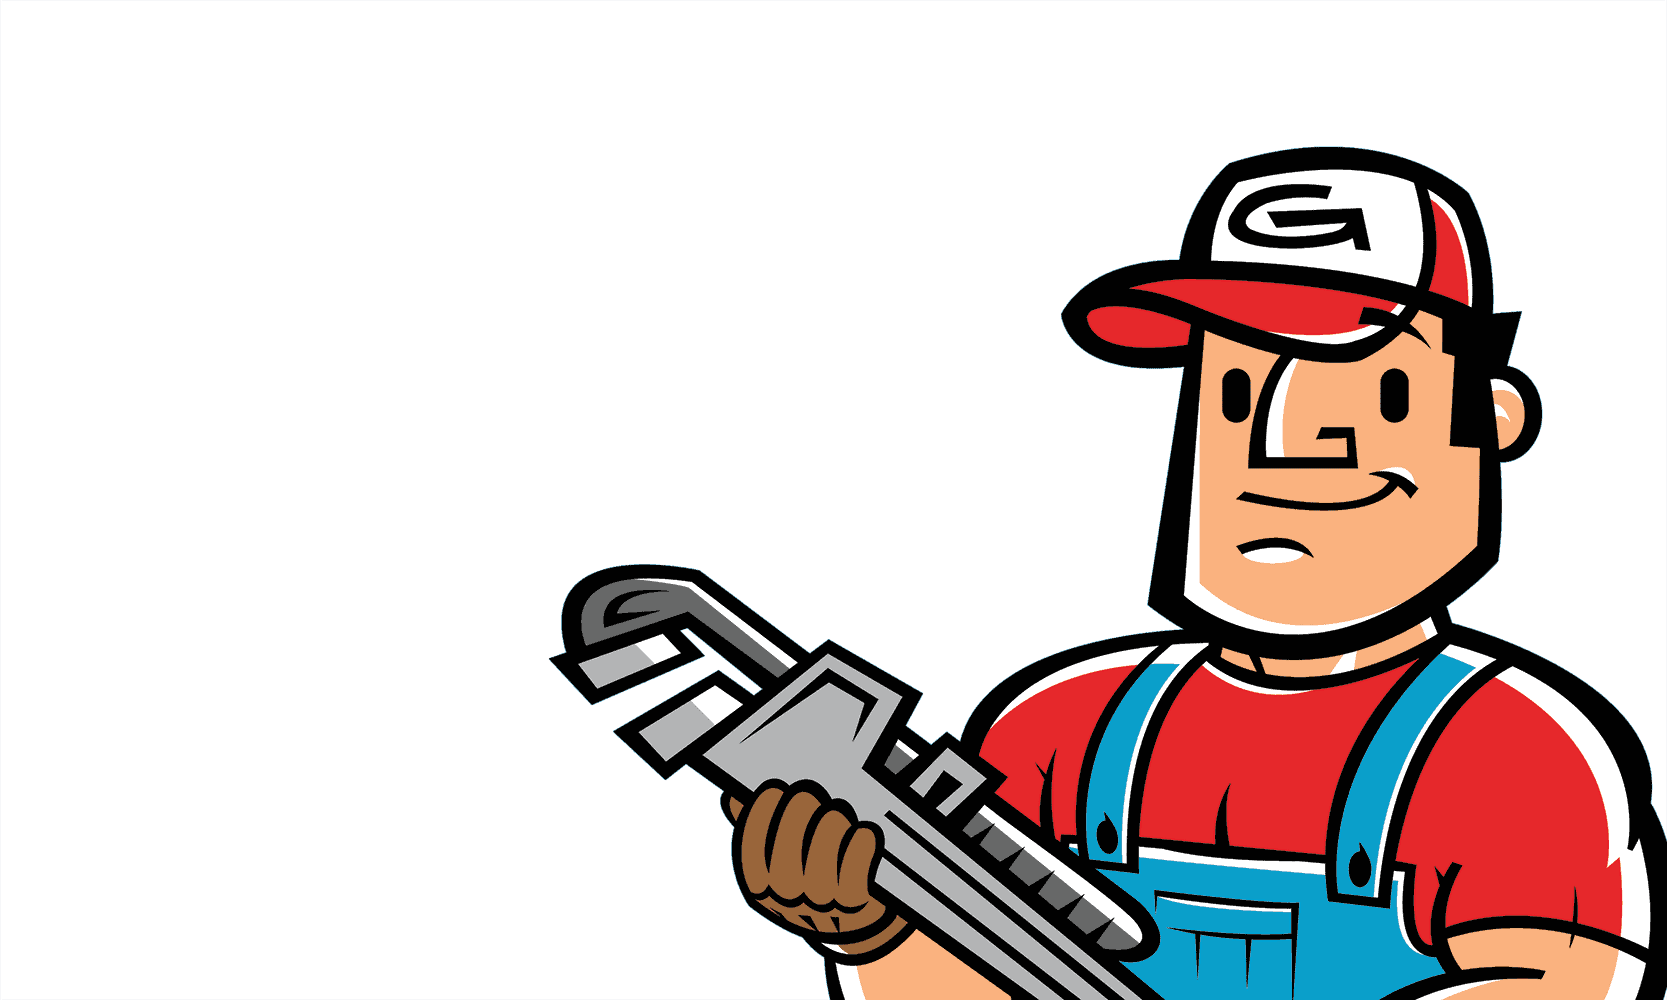 Gasman cartoon logo